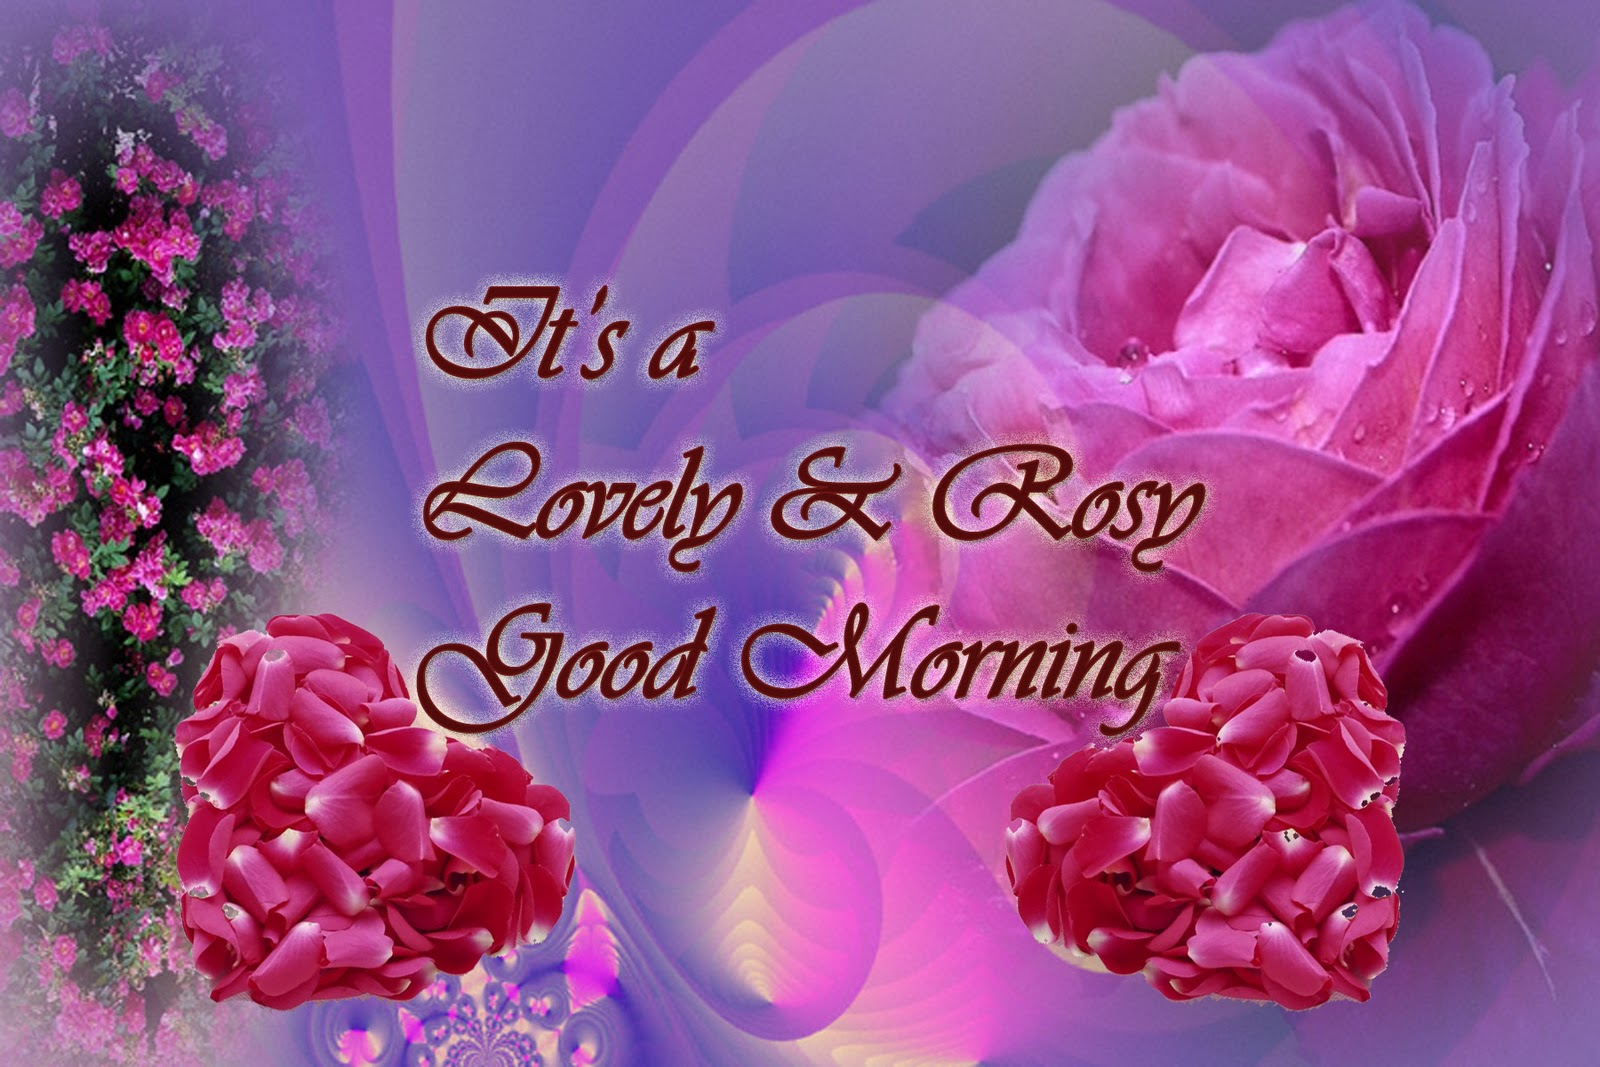 Good Morning Wishes Greeting Cards Images Pictures For Boyfriend